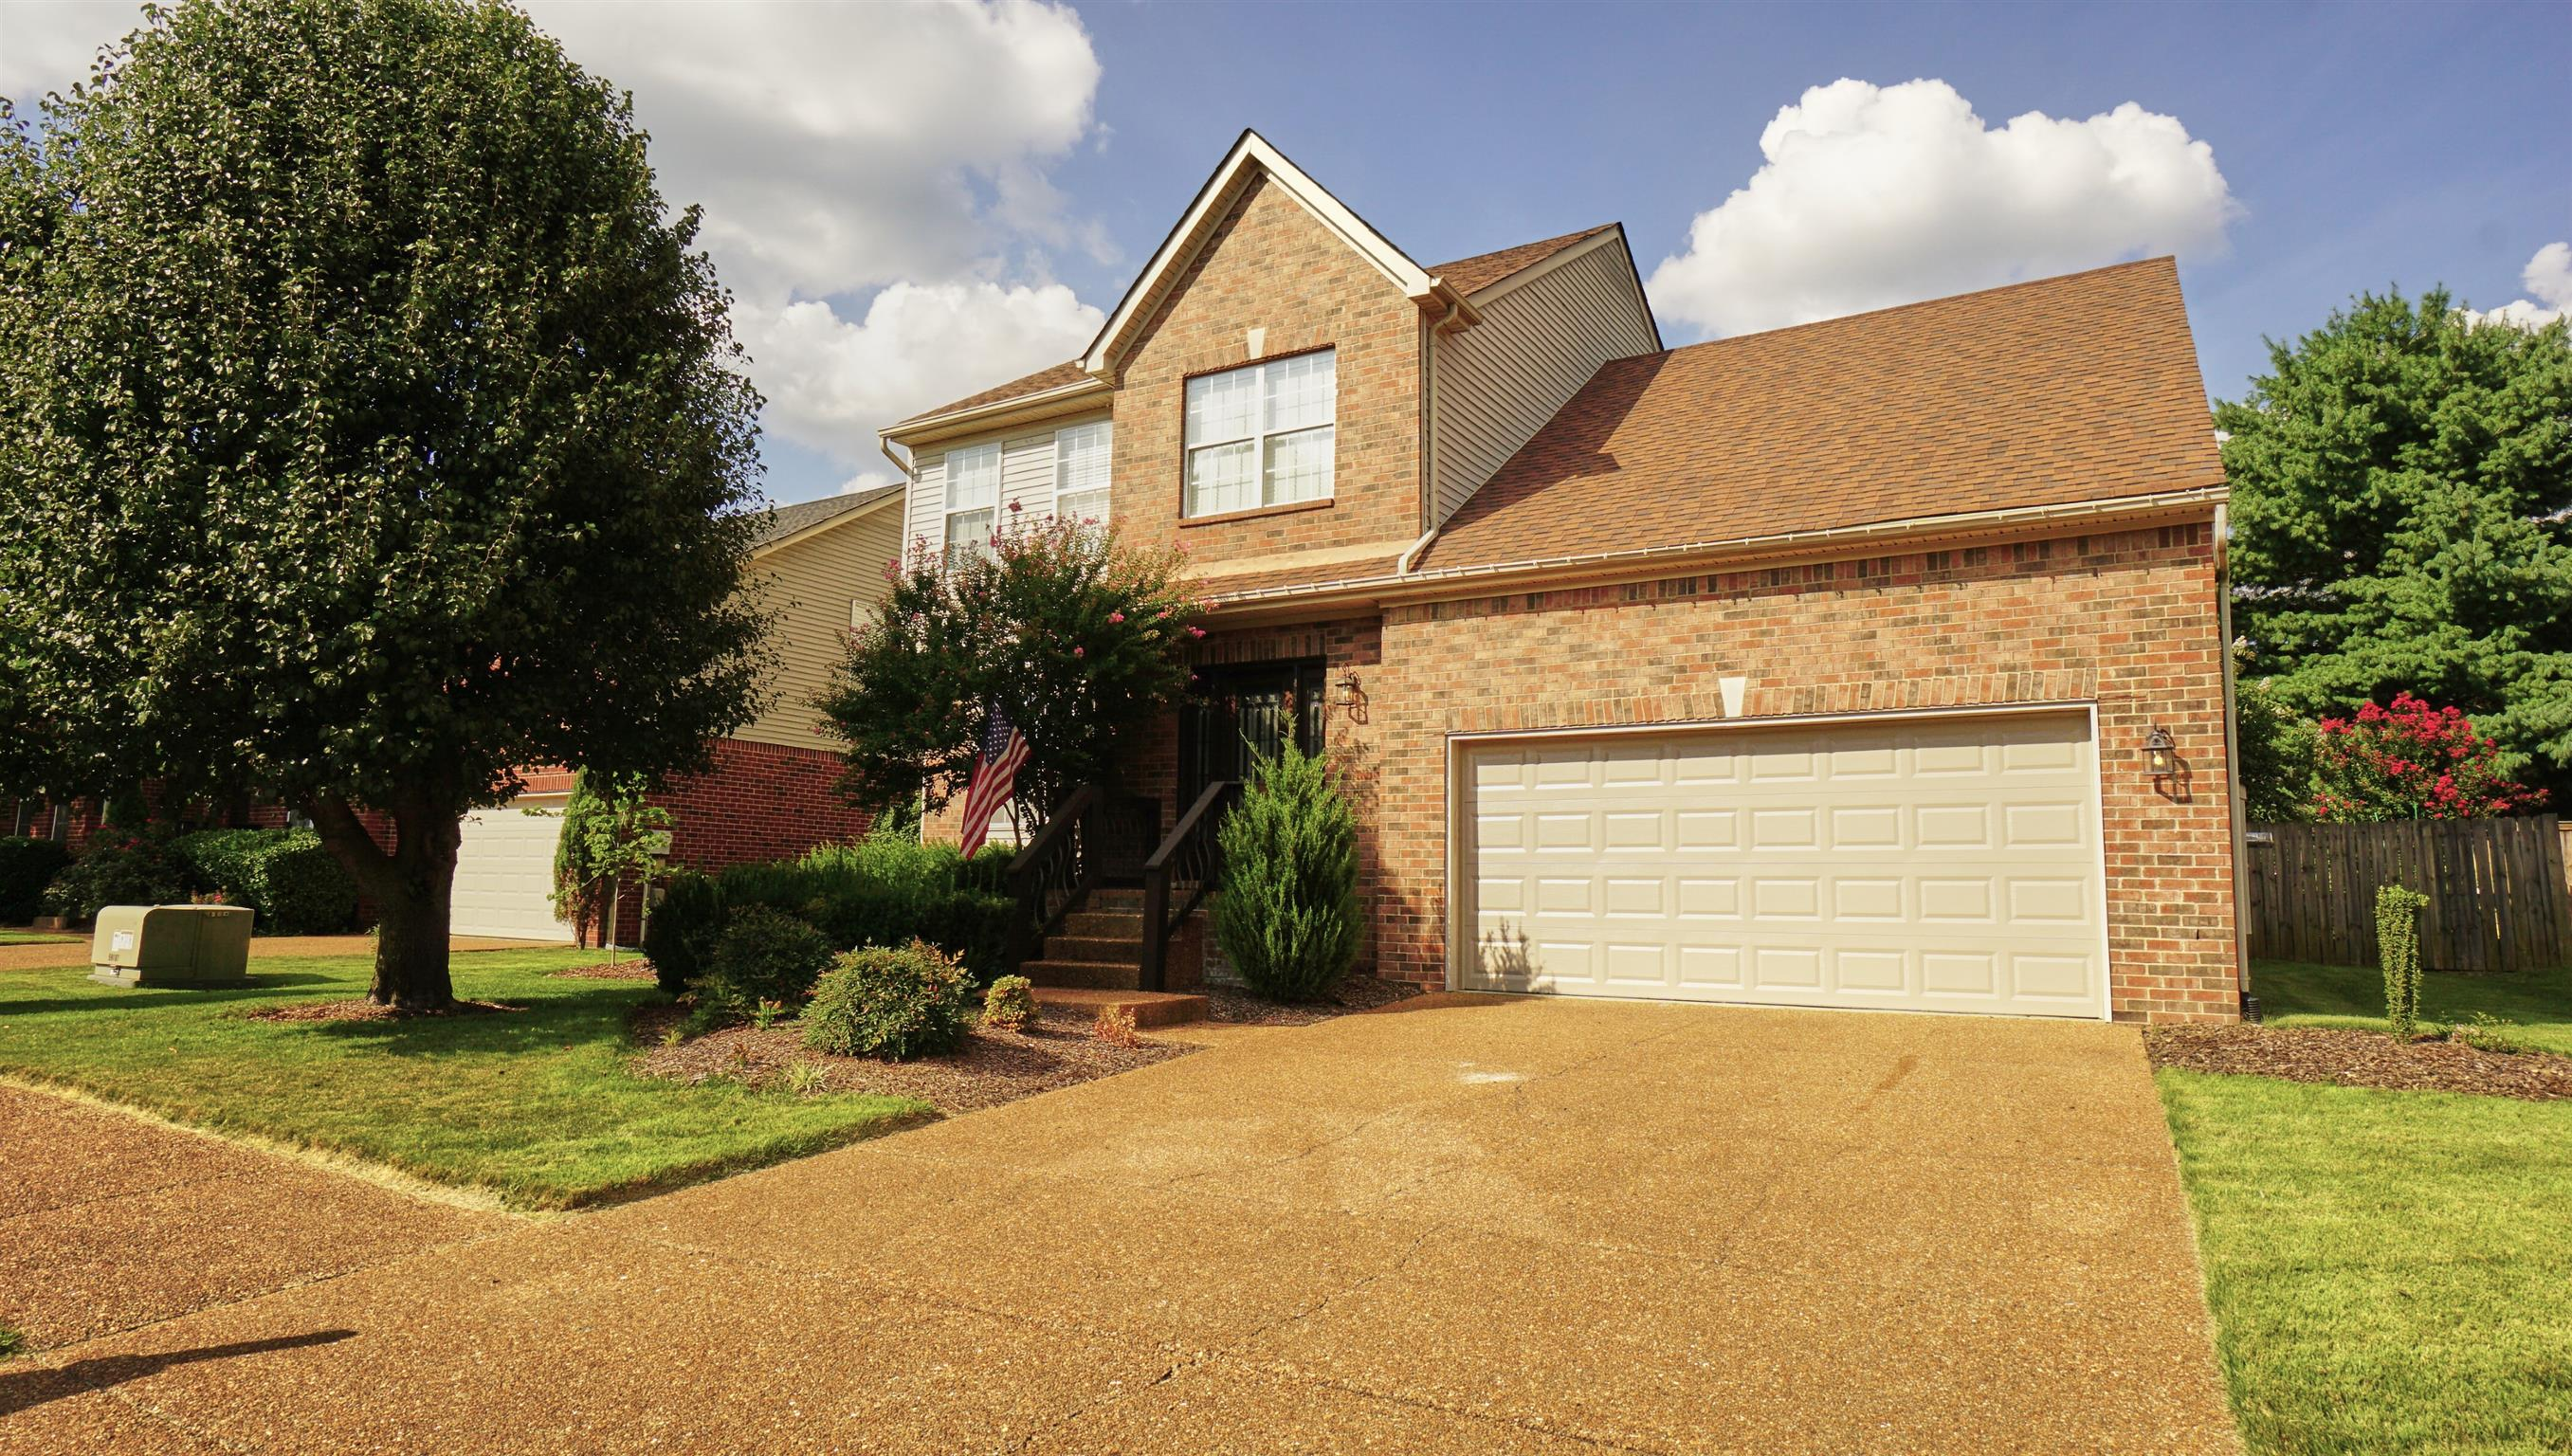 1032 Glastonbury Dr, Franklin, TN 37069